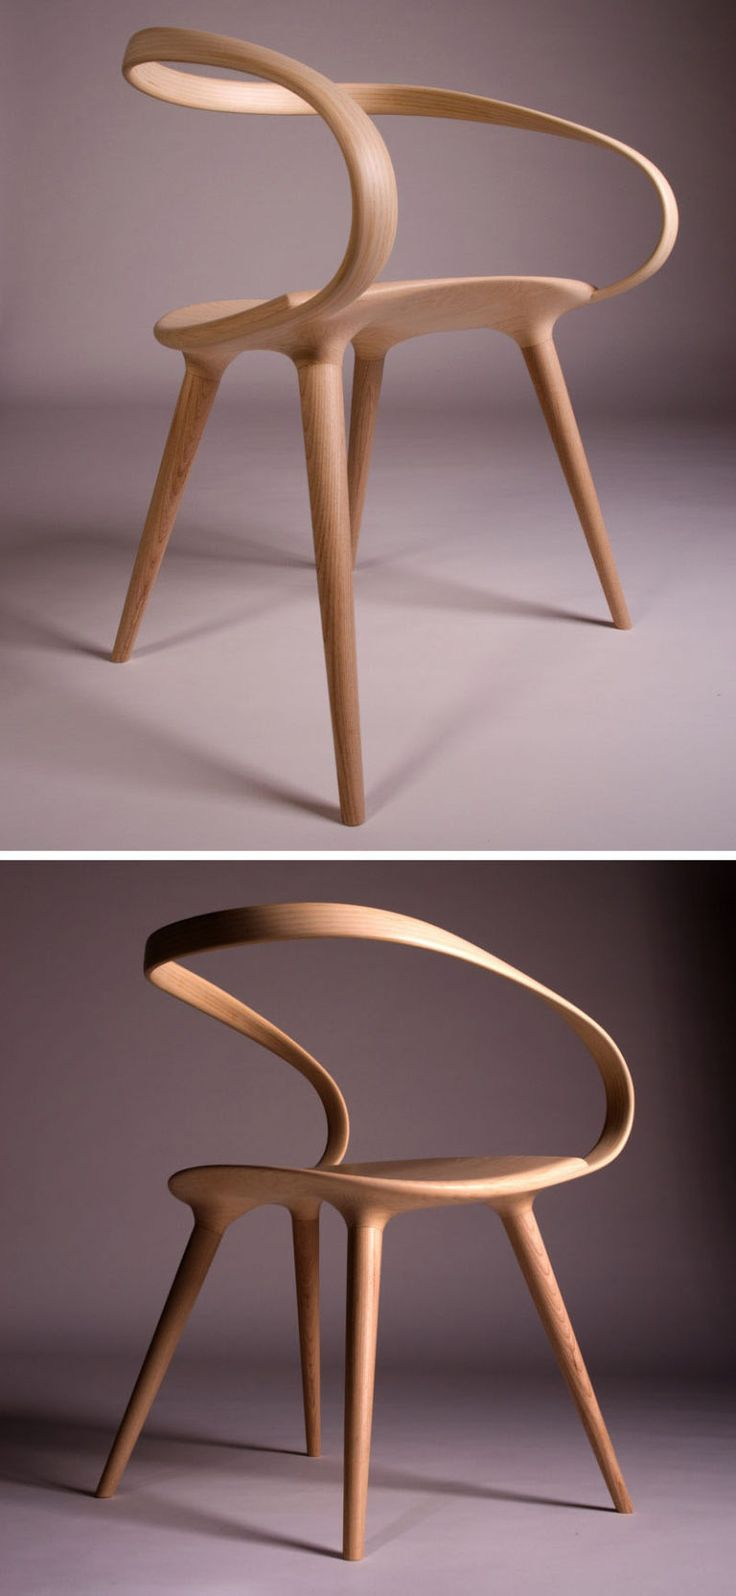 Curved Wood Furniture Design Images